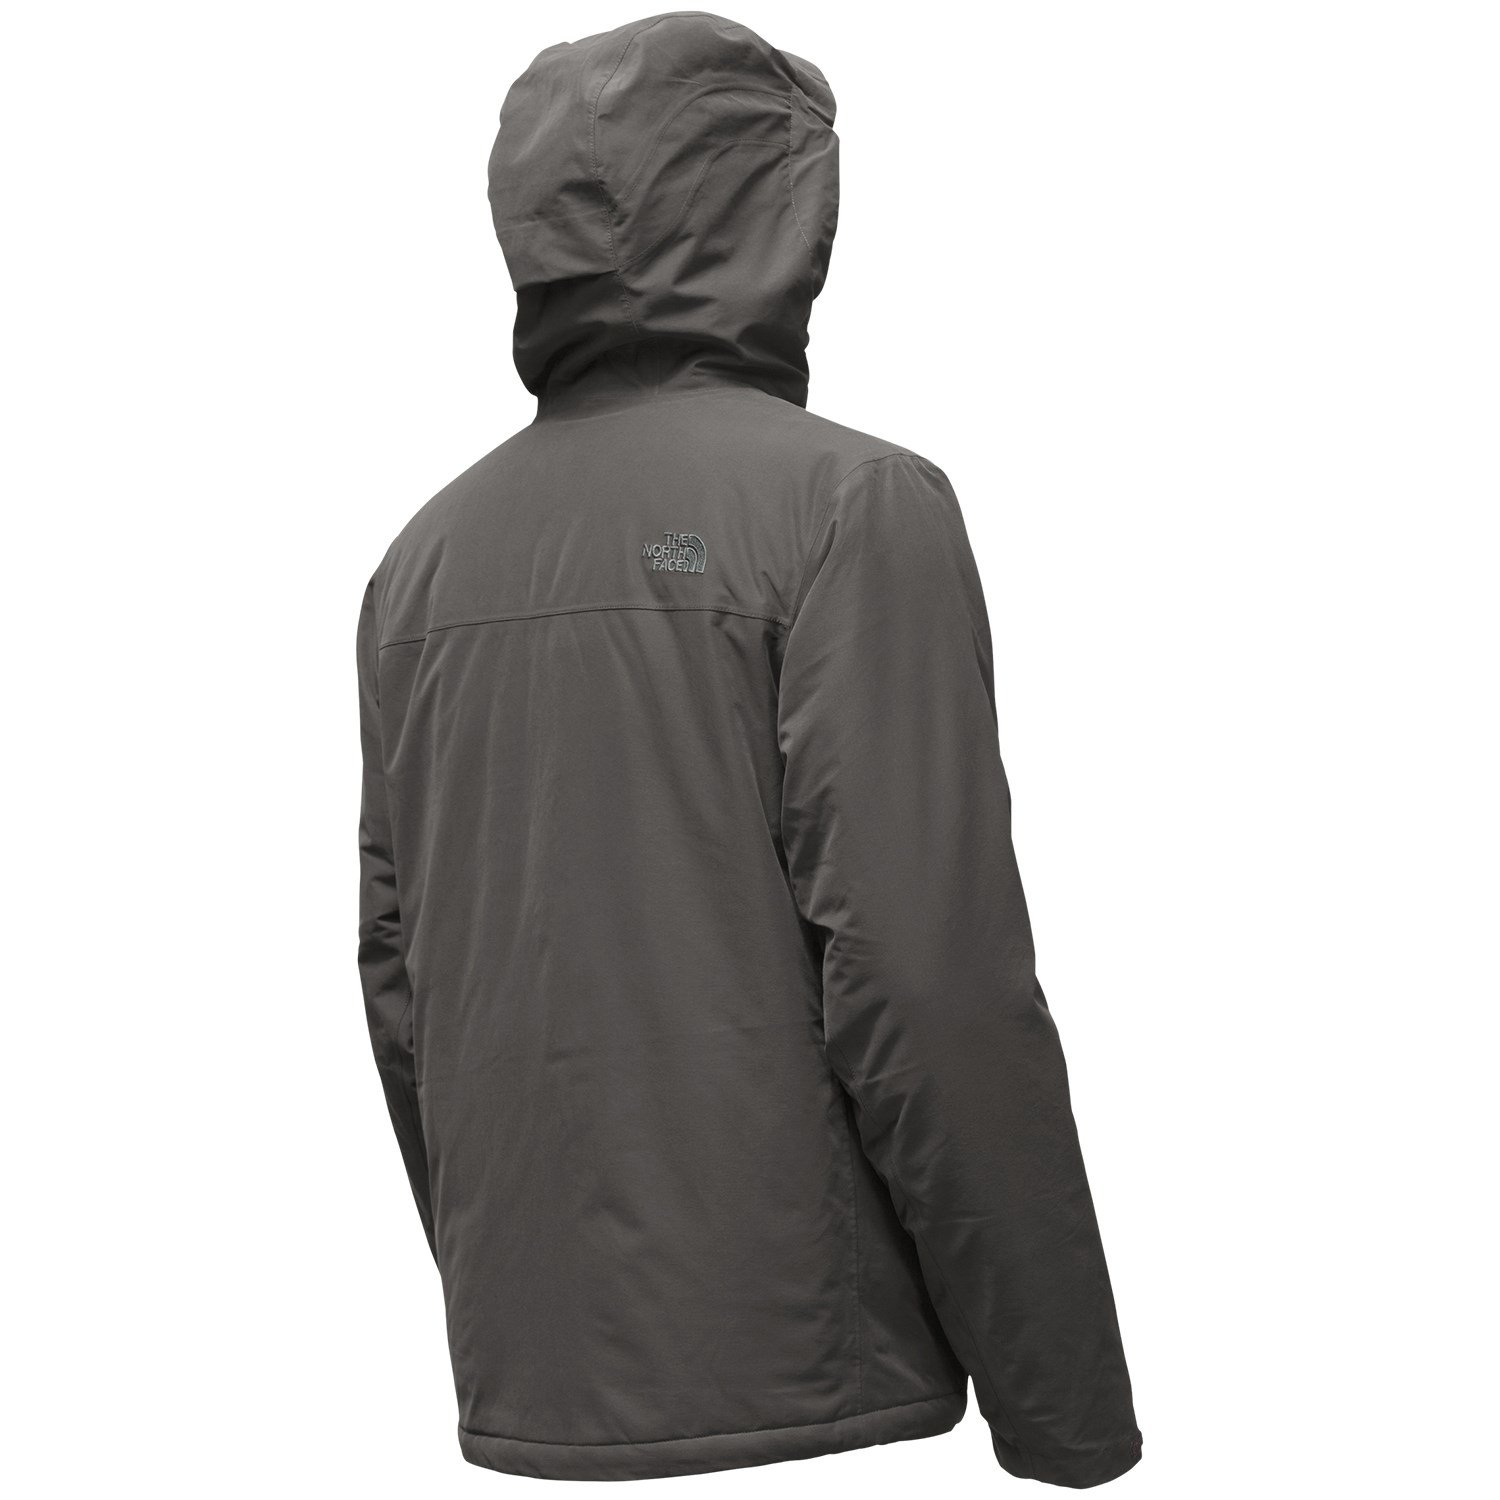 ... order the north face canyonlands triclimate jacket evo d3bfa 0fc7a 81d48c853